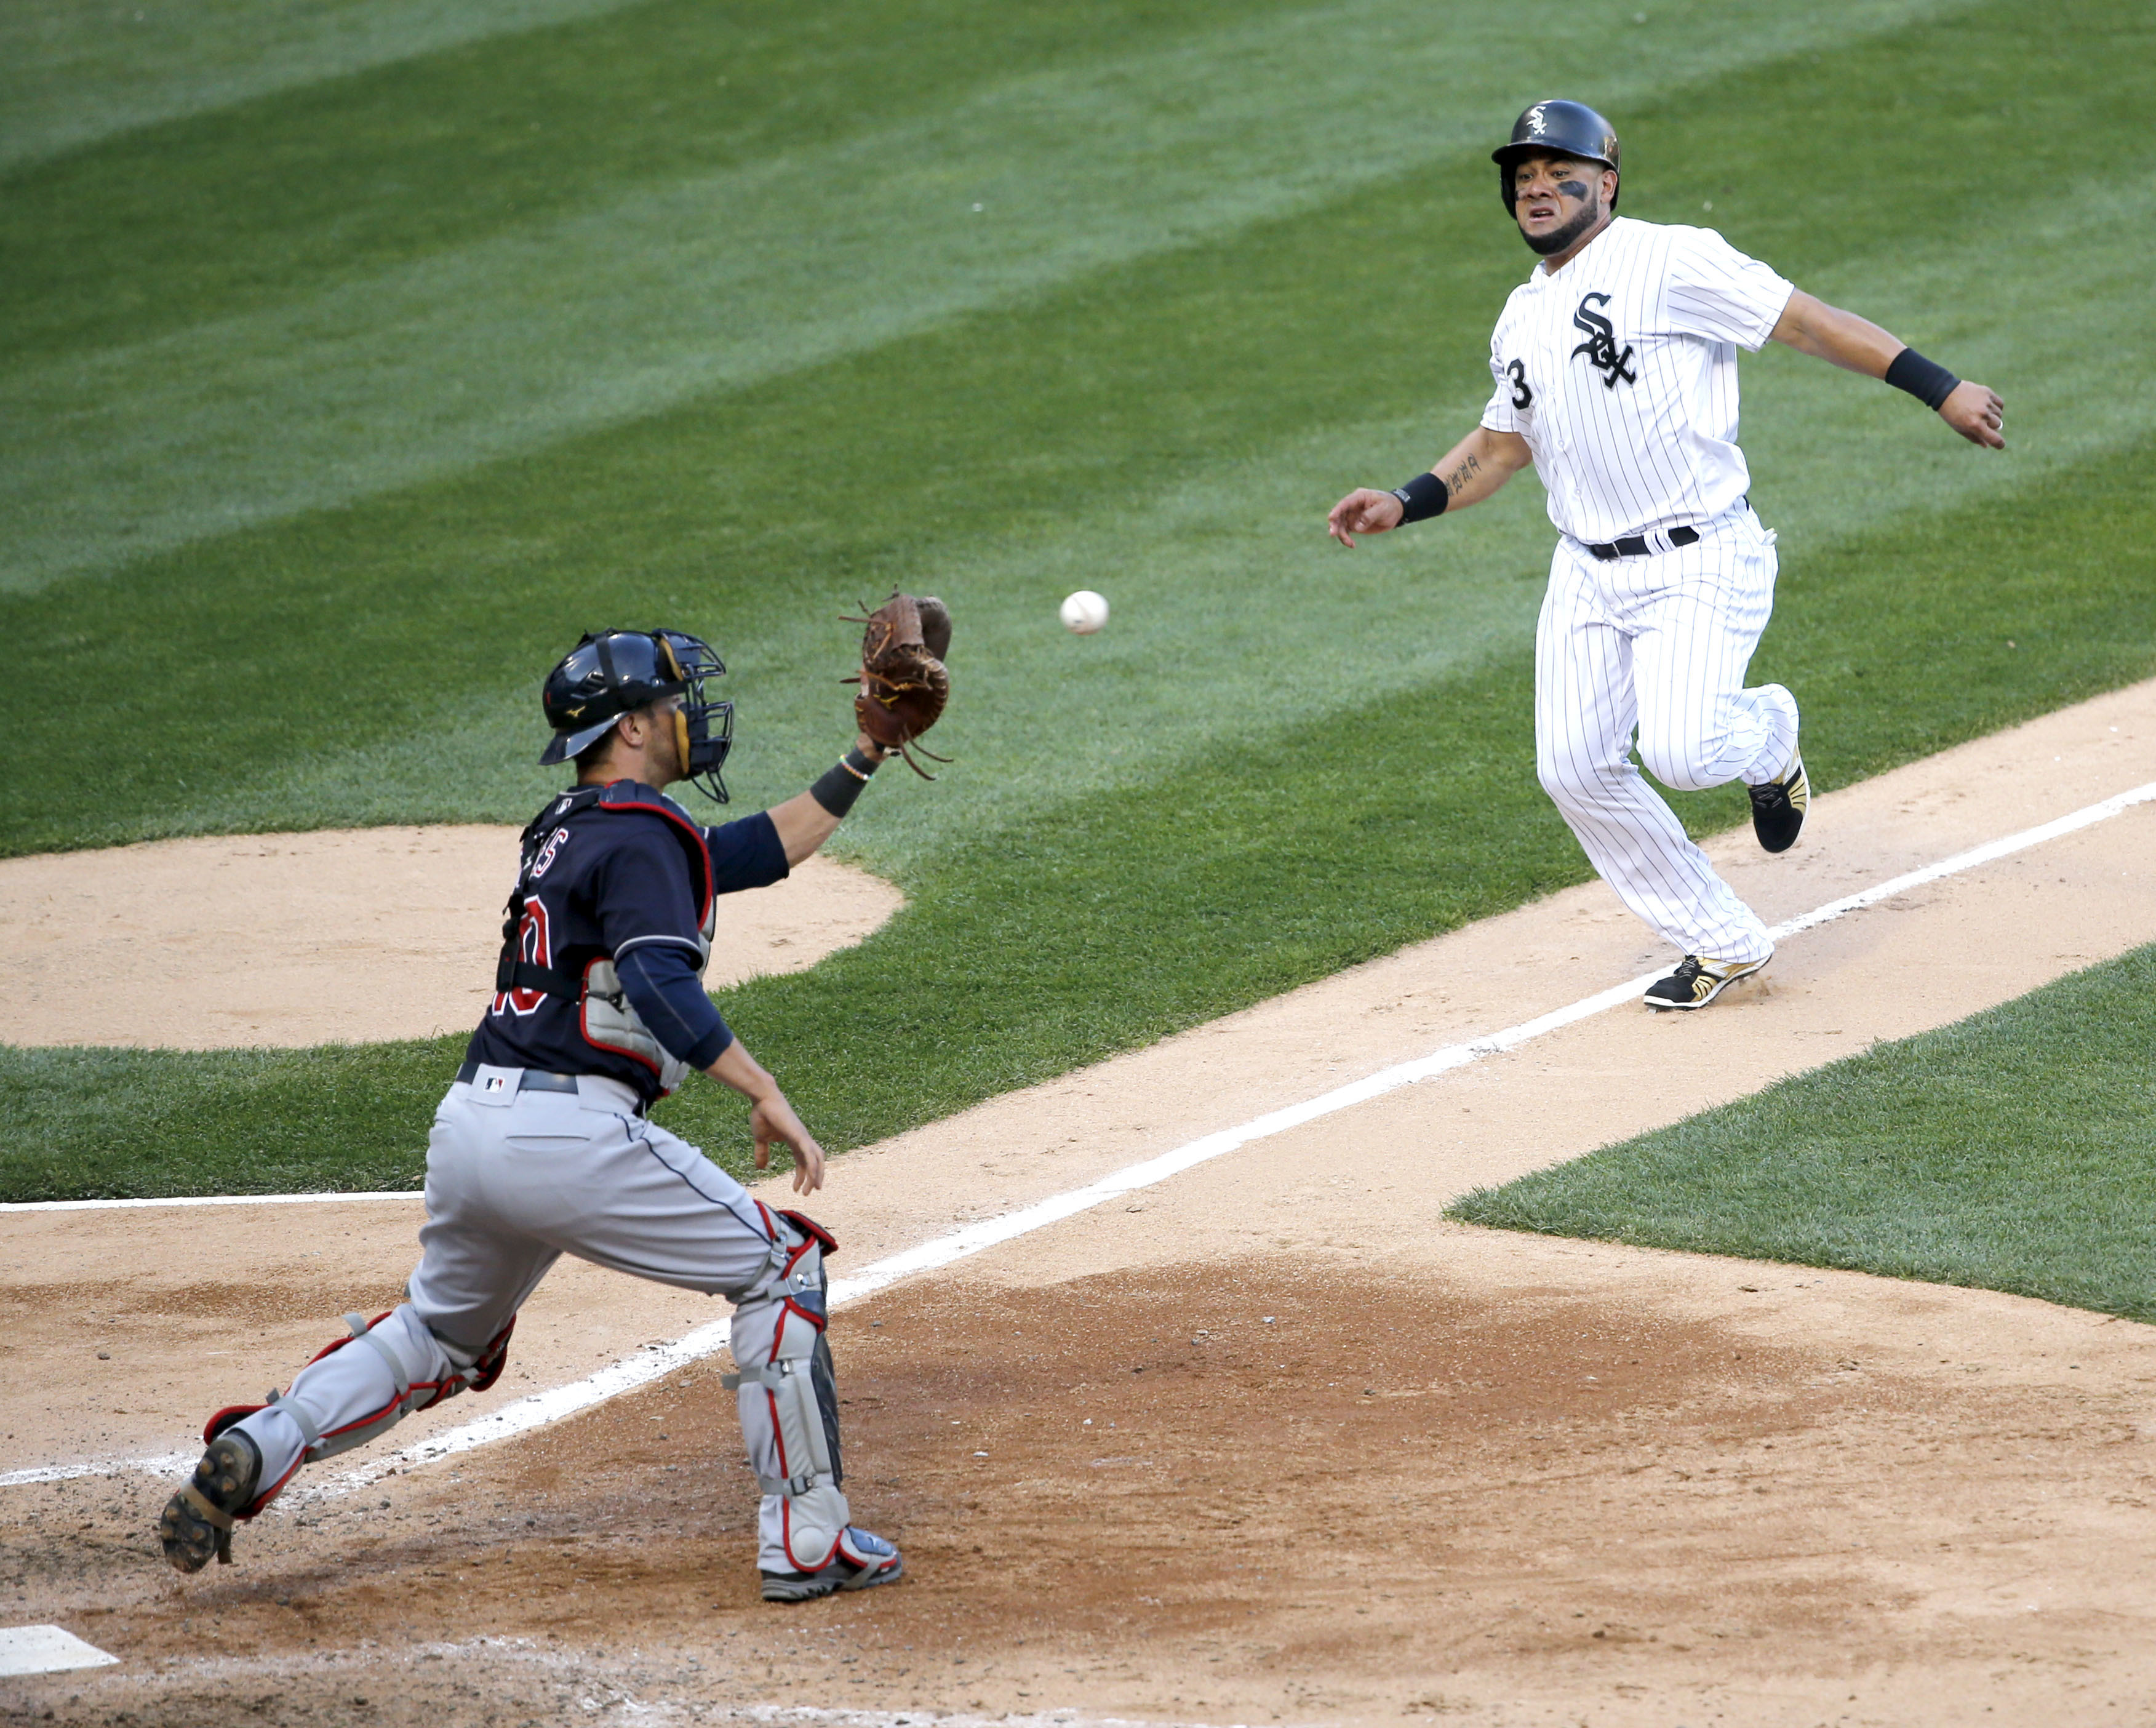 Cleveland Indians catcher Yan Gomes, left, takes a throw from right fielder Michael Martinez and tags out Chicago White Sox's Melky Cabrera at home during the seventh inning of a baseball game Monday, May 23, 2016, in Chicago. (AP Photo/Charles Rex Arboga